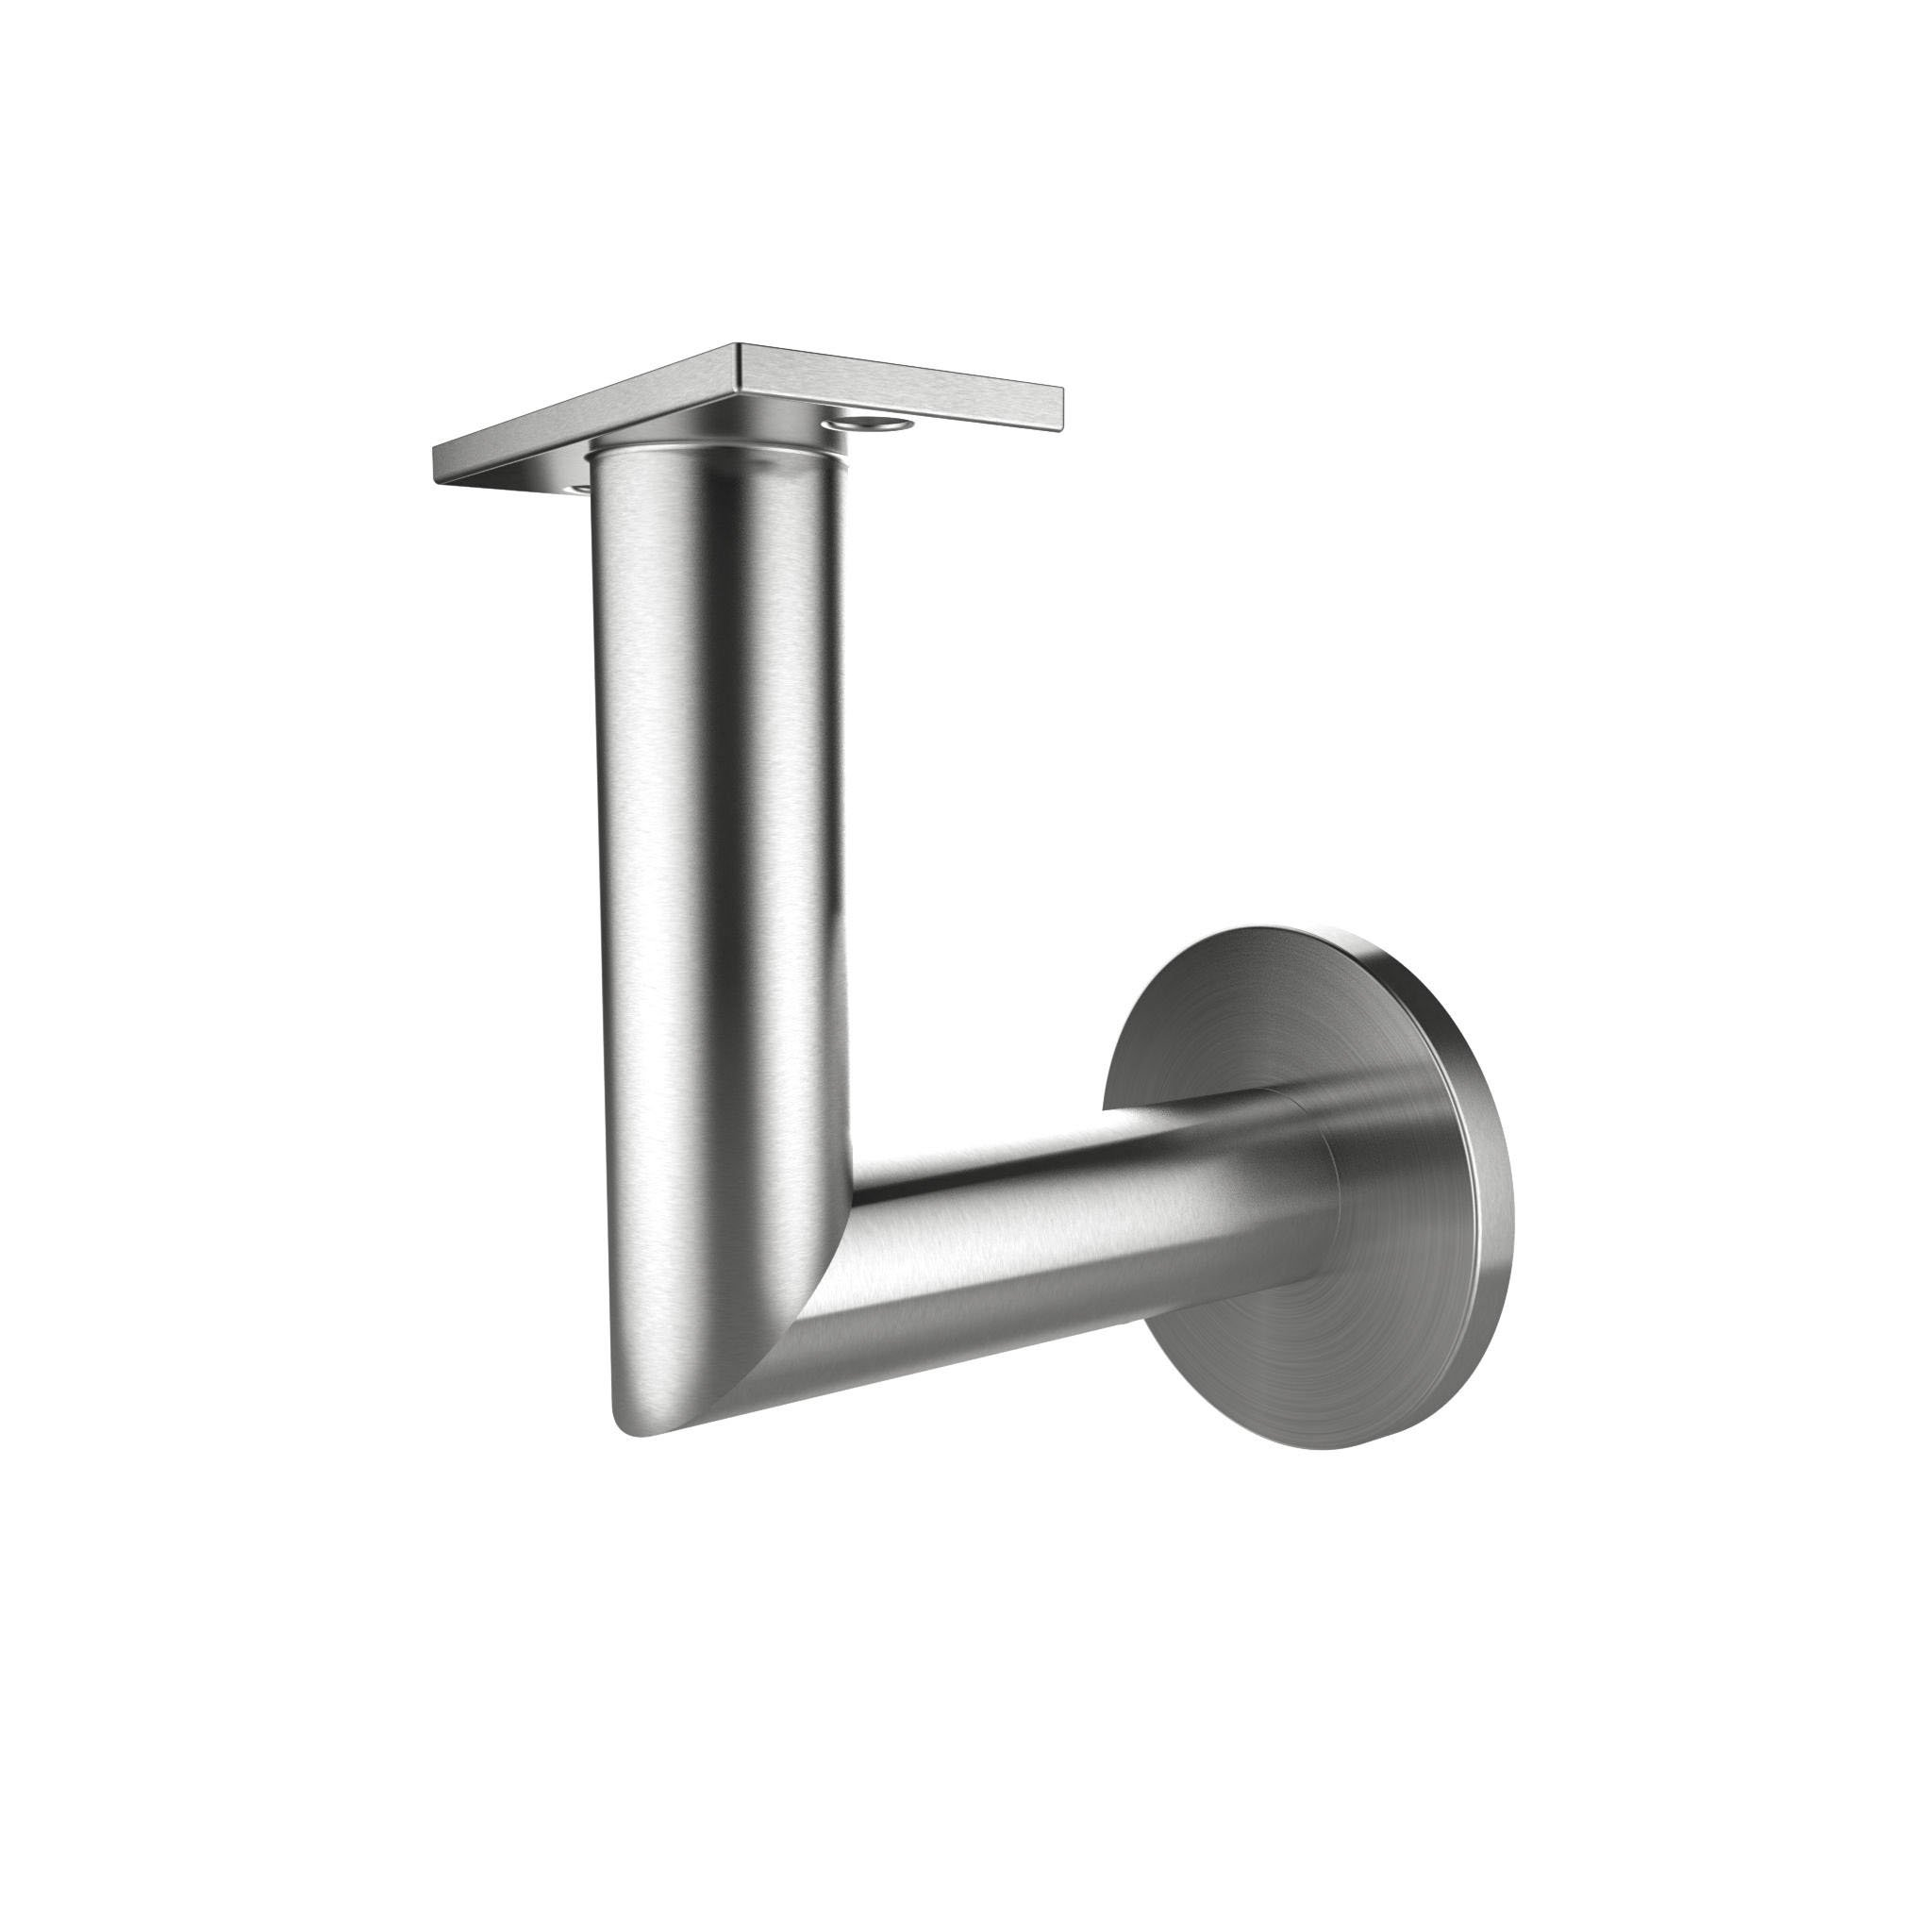 Stainless Steel Handrail Wall Bracket Luminous Quasar (Mounting Surface: Wood or Sheet Rock)